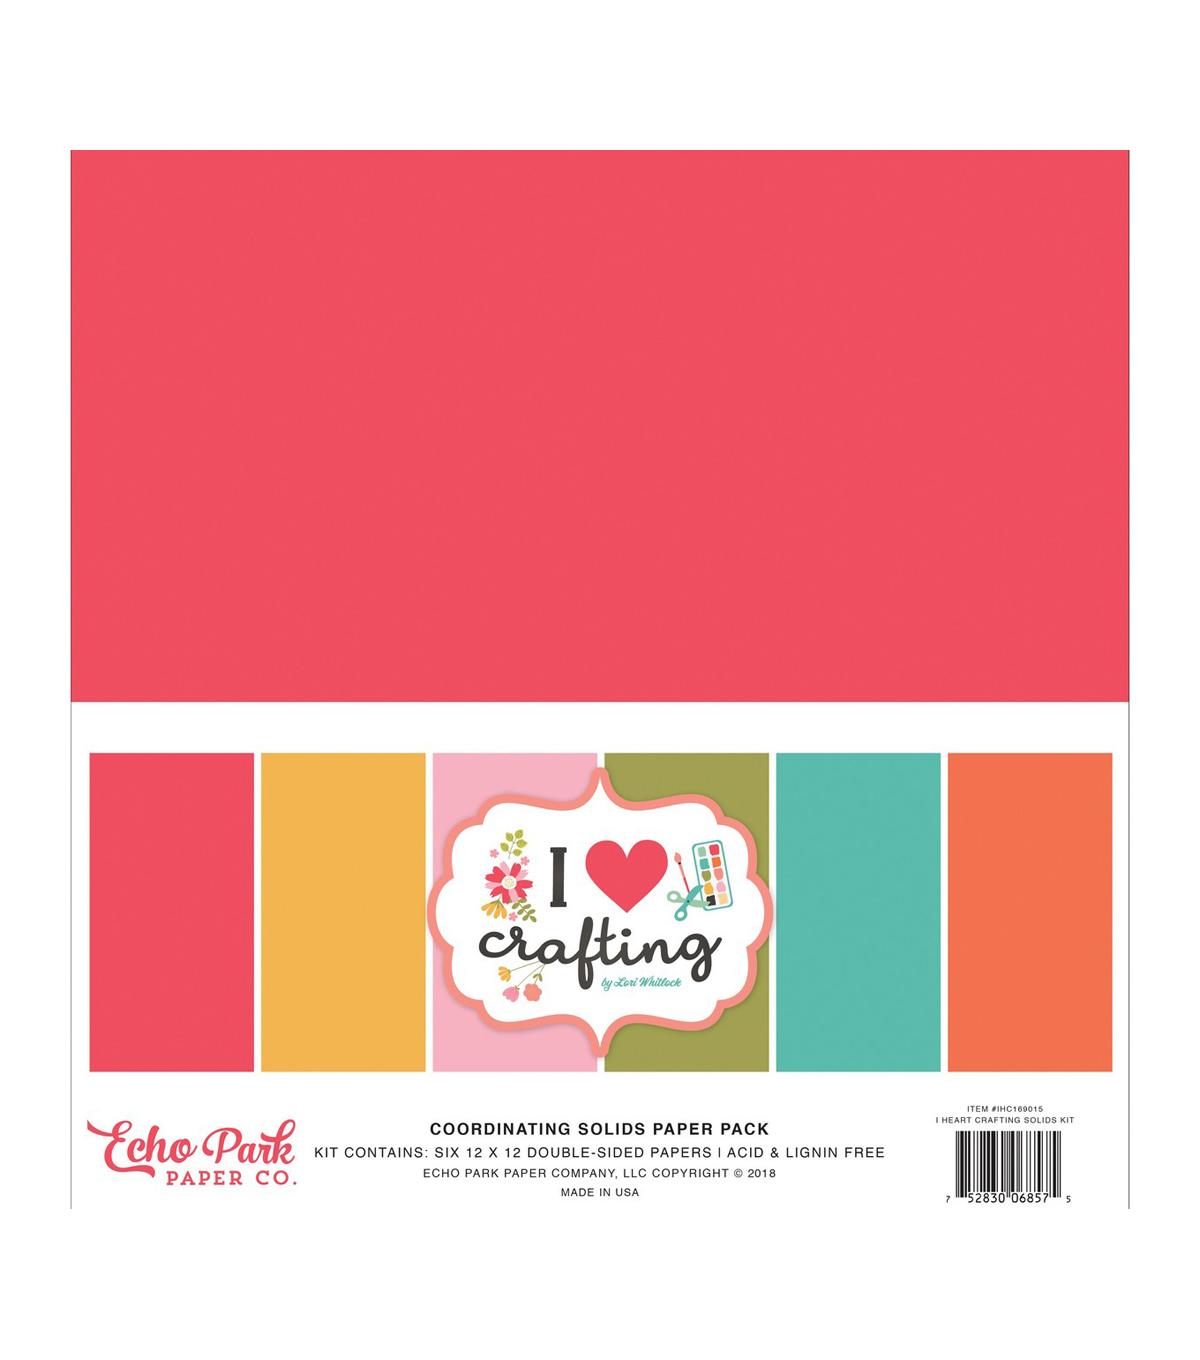 Echo Park Paper Co. I Heart Crafting 6 pk Double-sided Cardstock-Solids